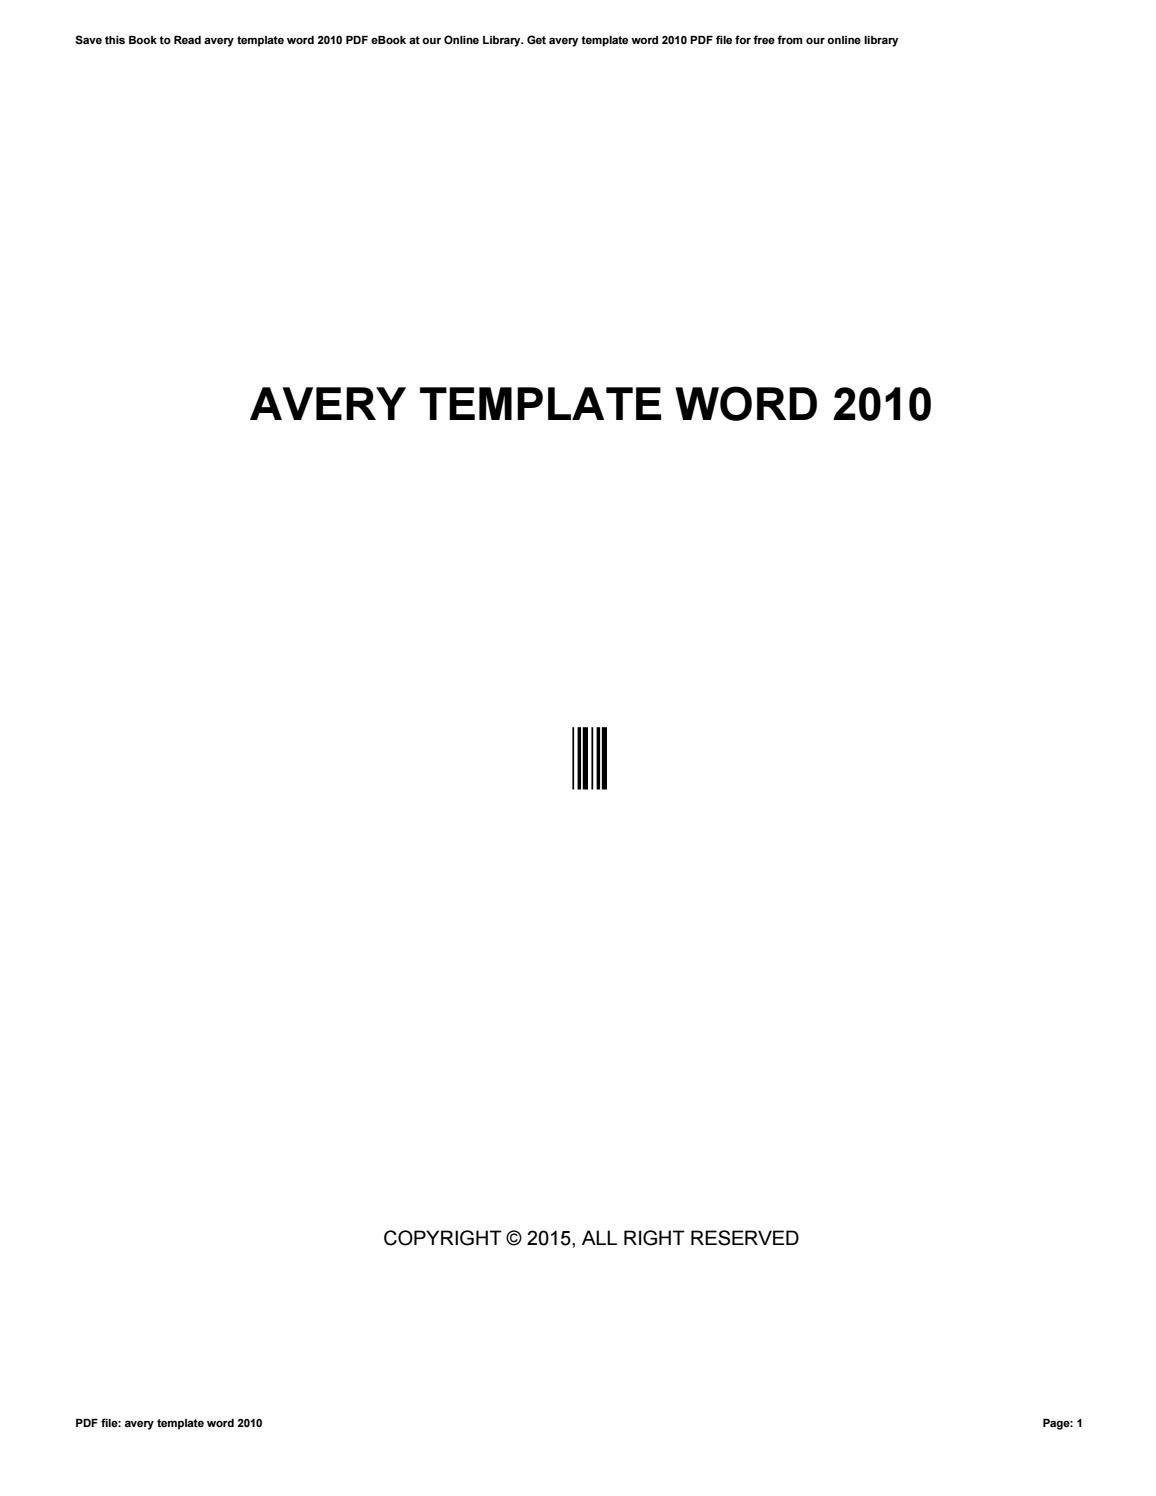 avery template word 2010 by gotimes62